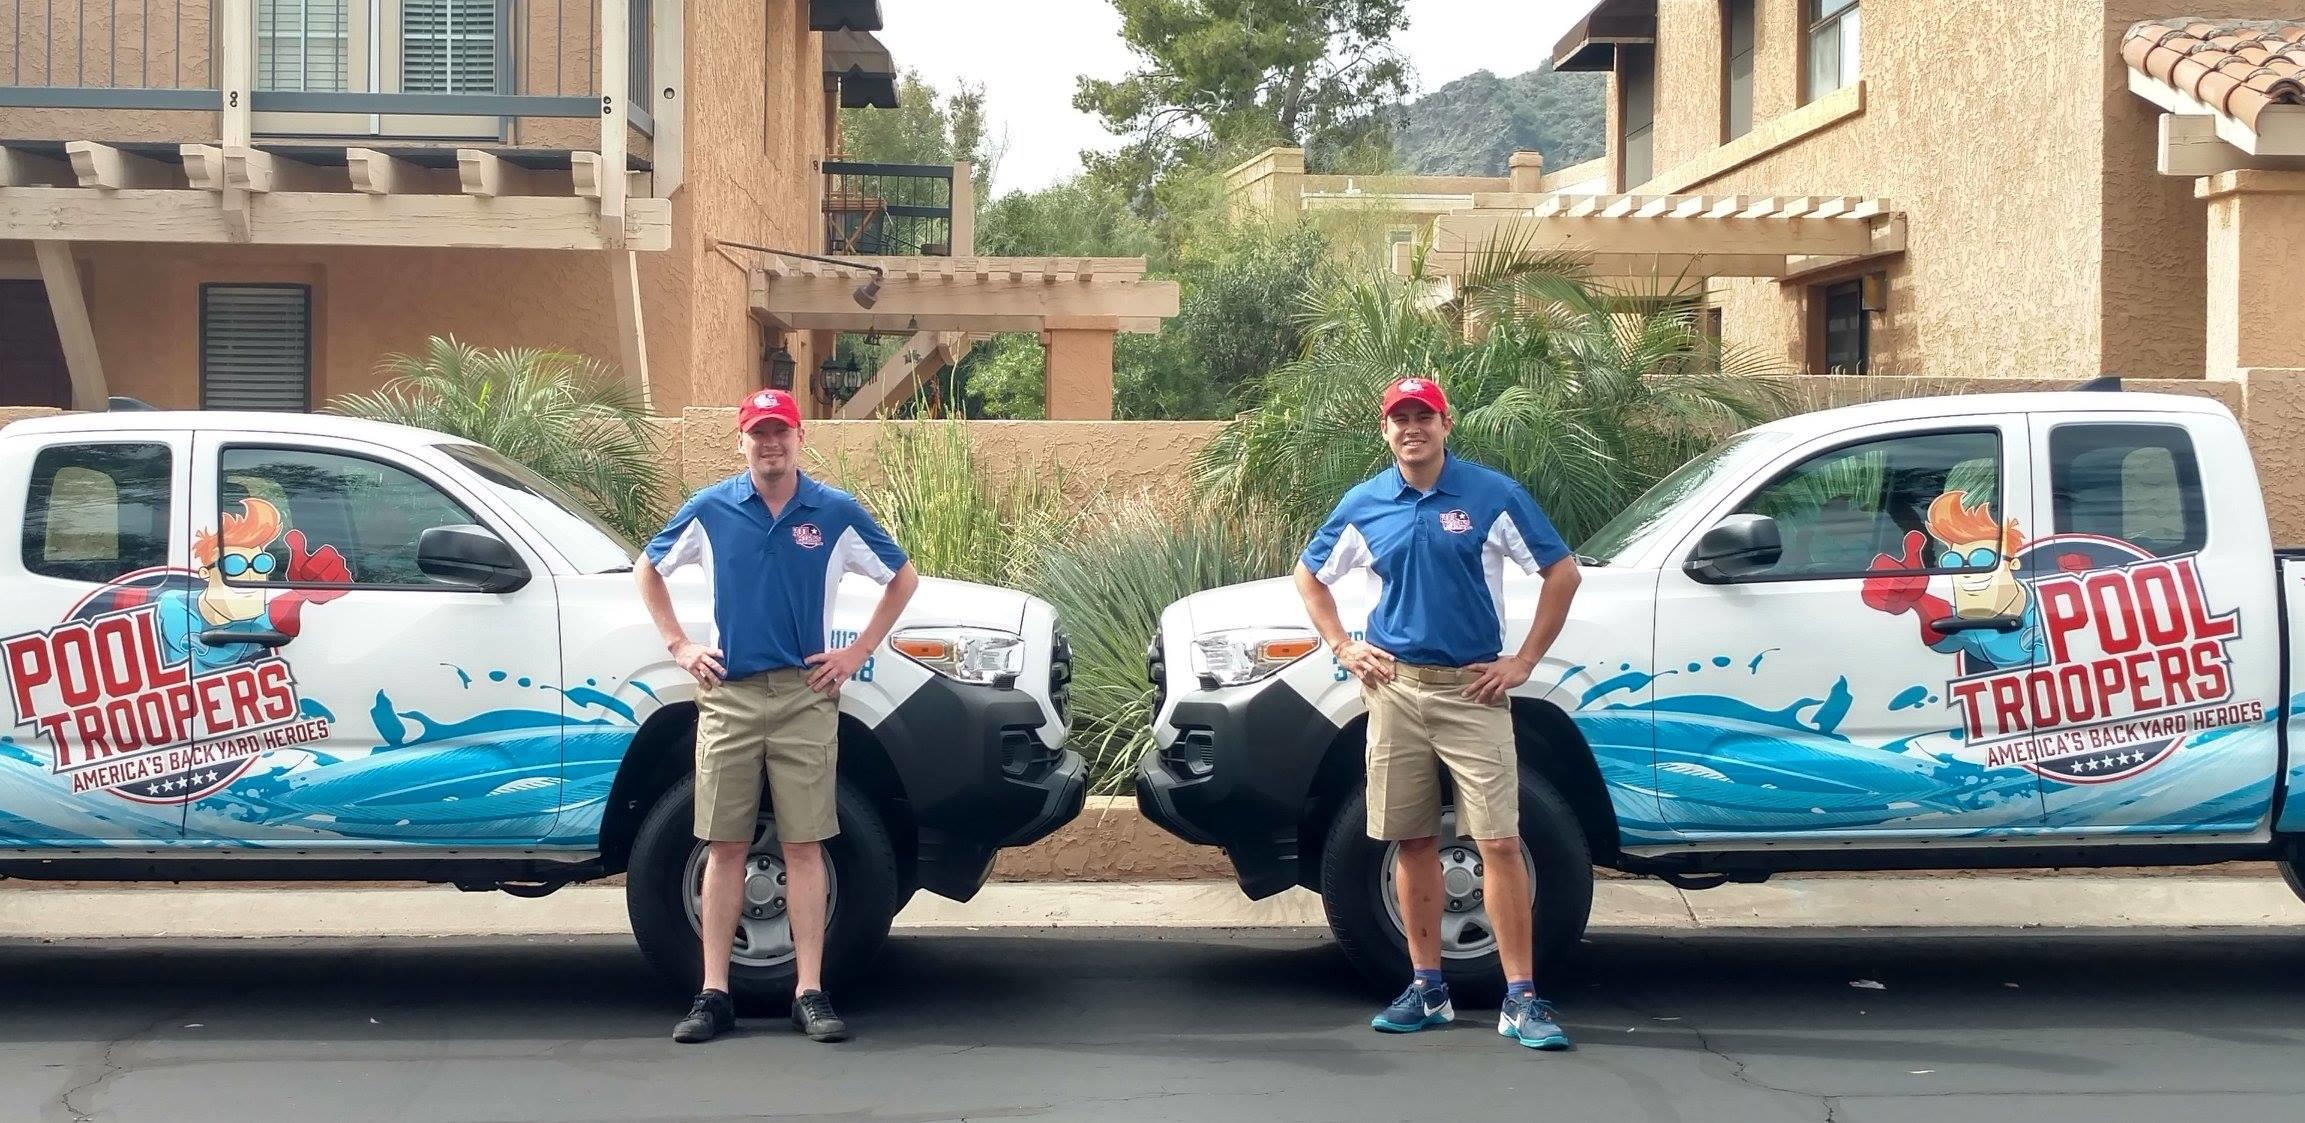 Pool Troopers Technicians by Service Truck